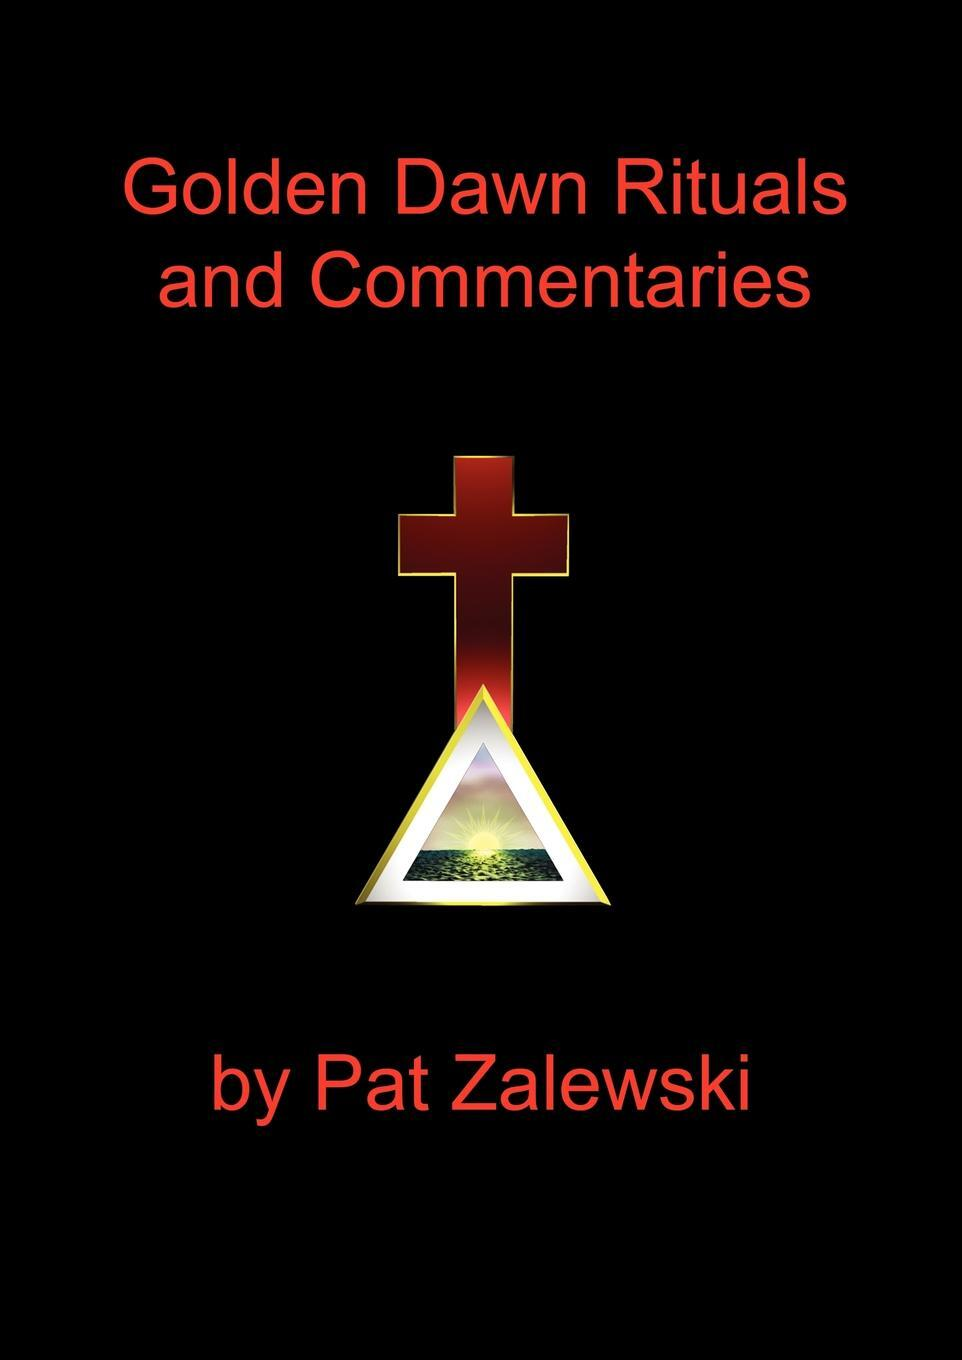 Golden Dawn Rituals and Commentaries. Pat Zalewski